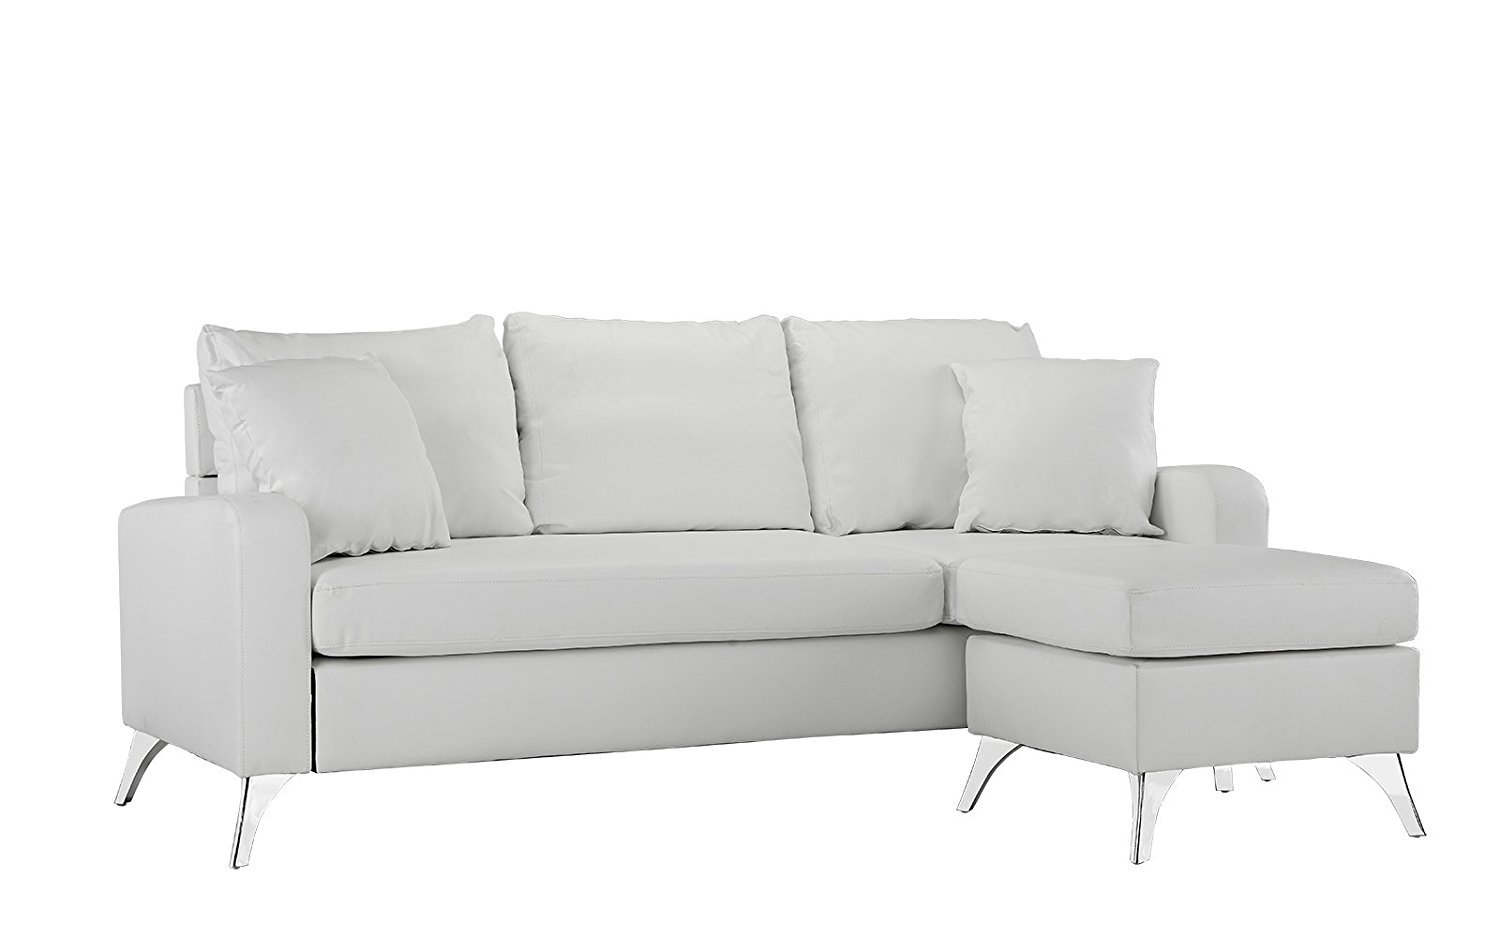 Modern Bonded Leather Sectional Sofa   Small Space Configurable Couch  (White)